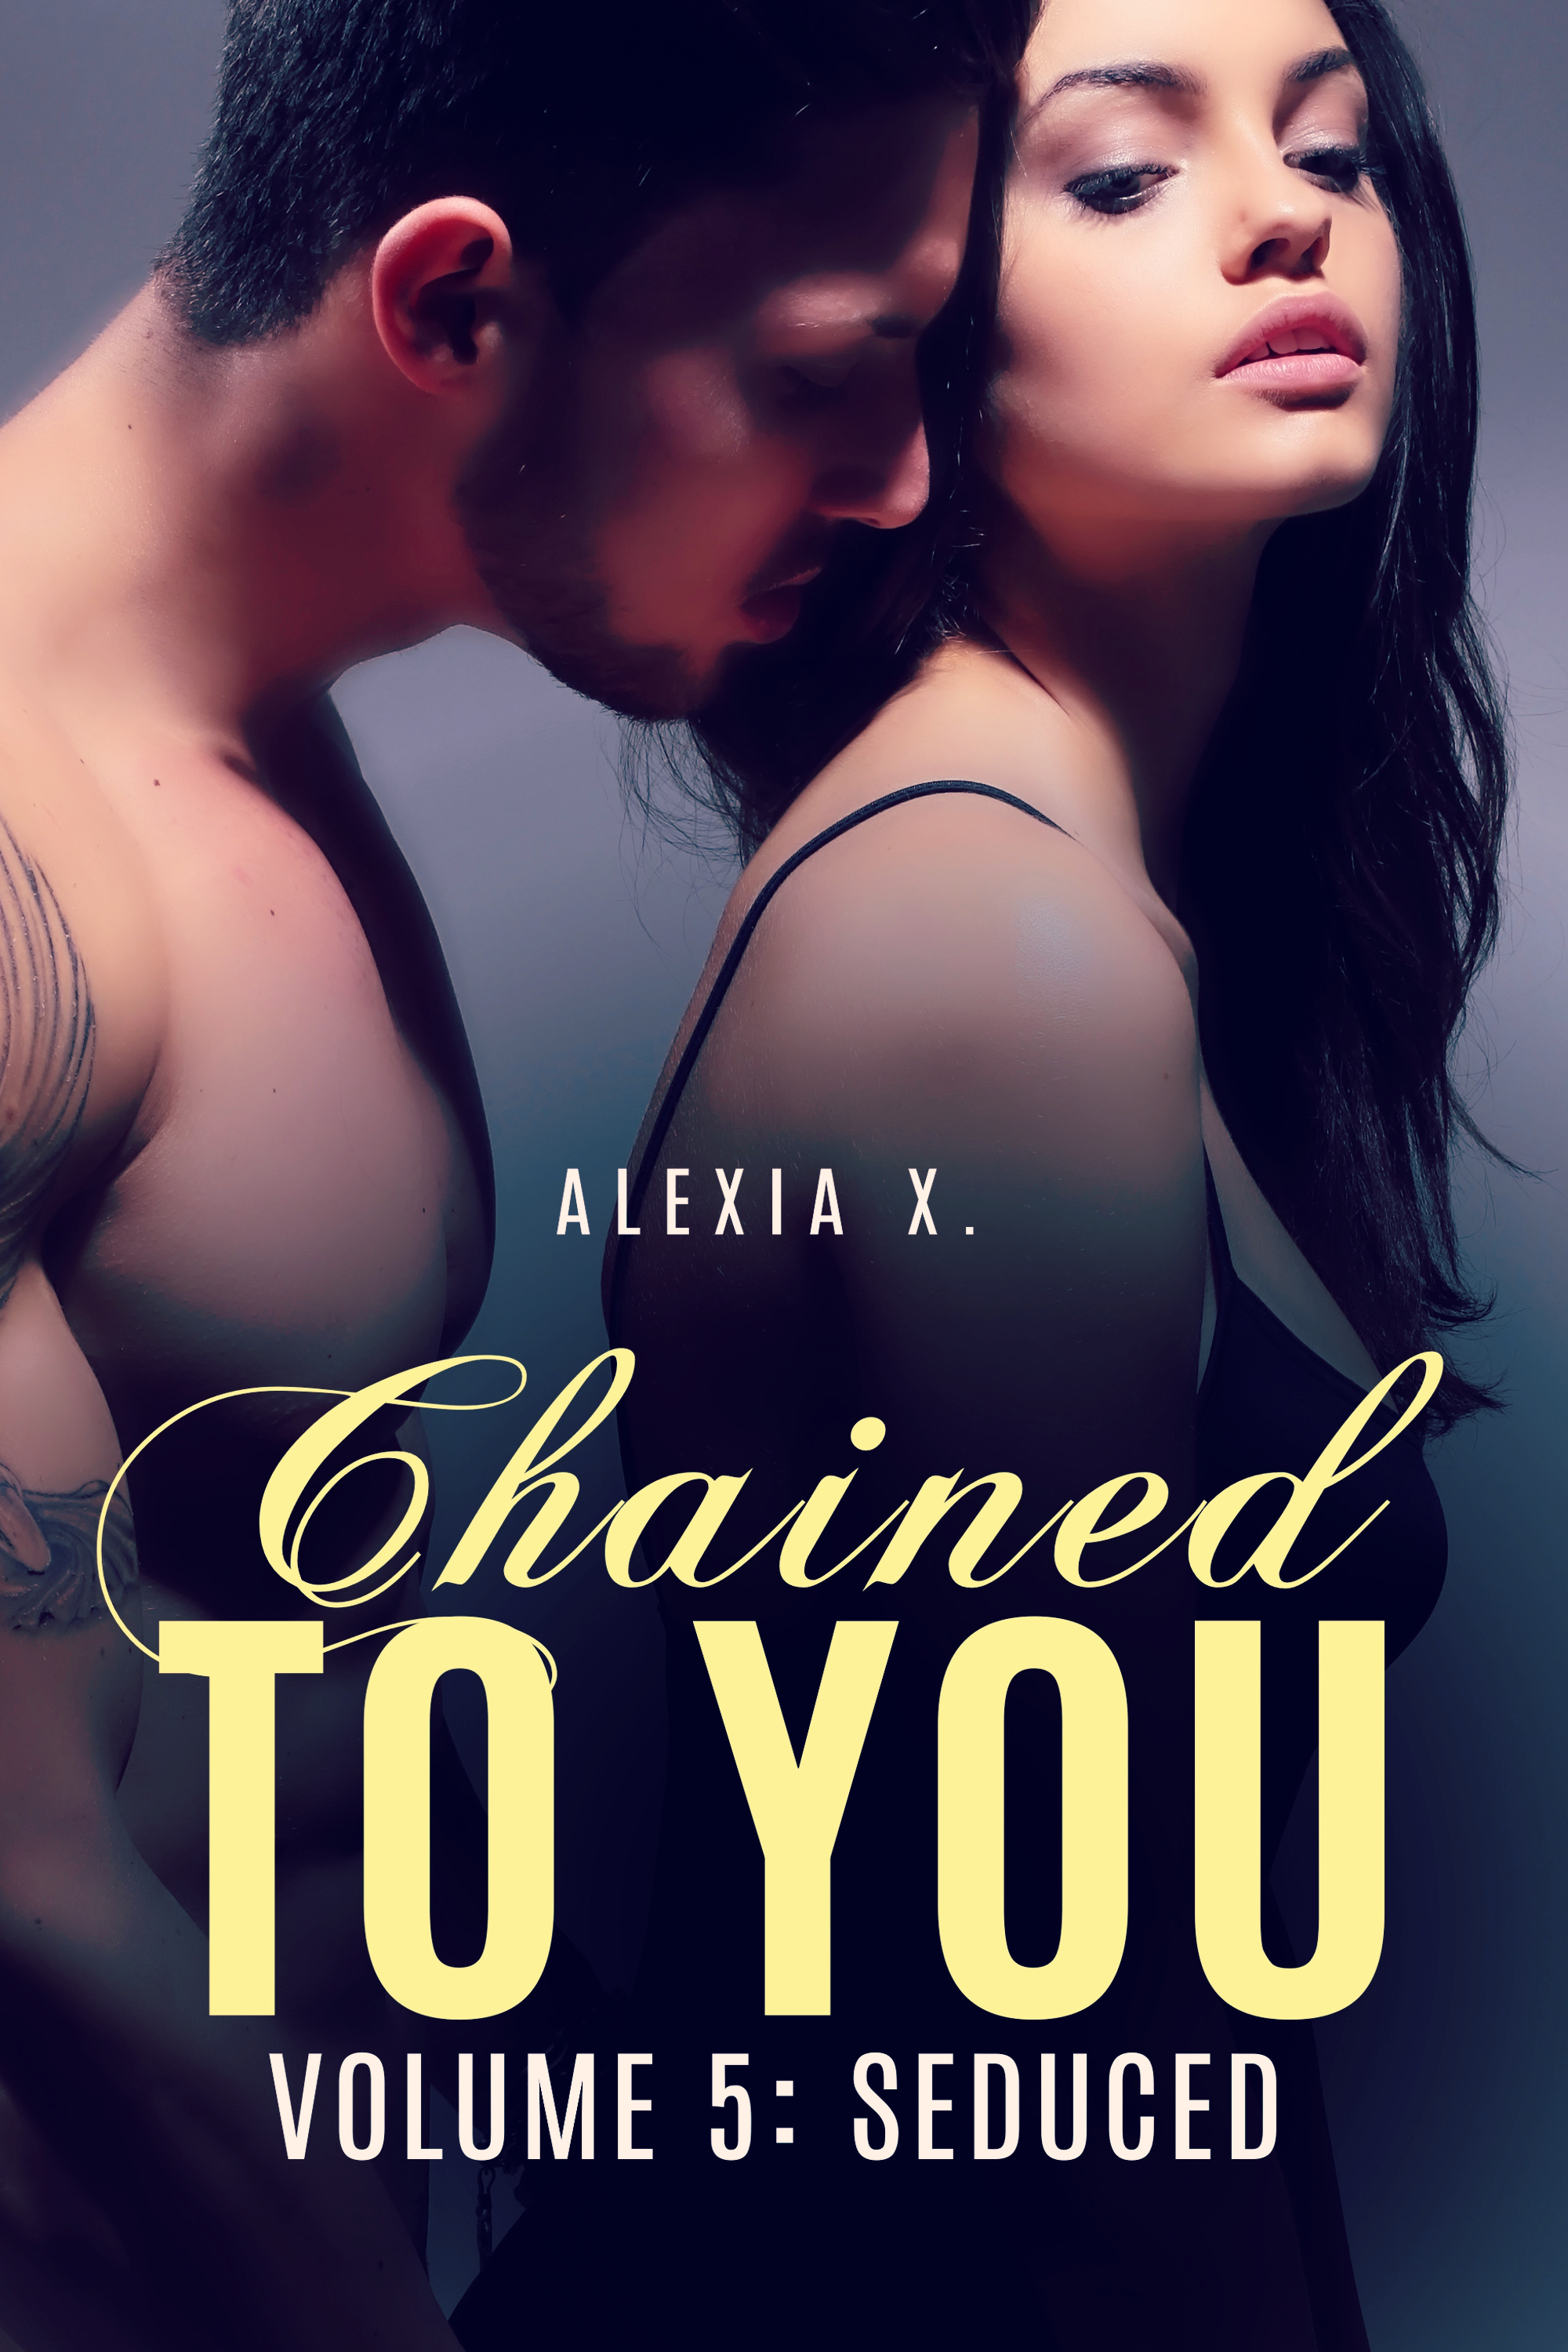 Chained to You Vol. 5